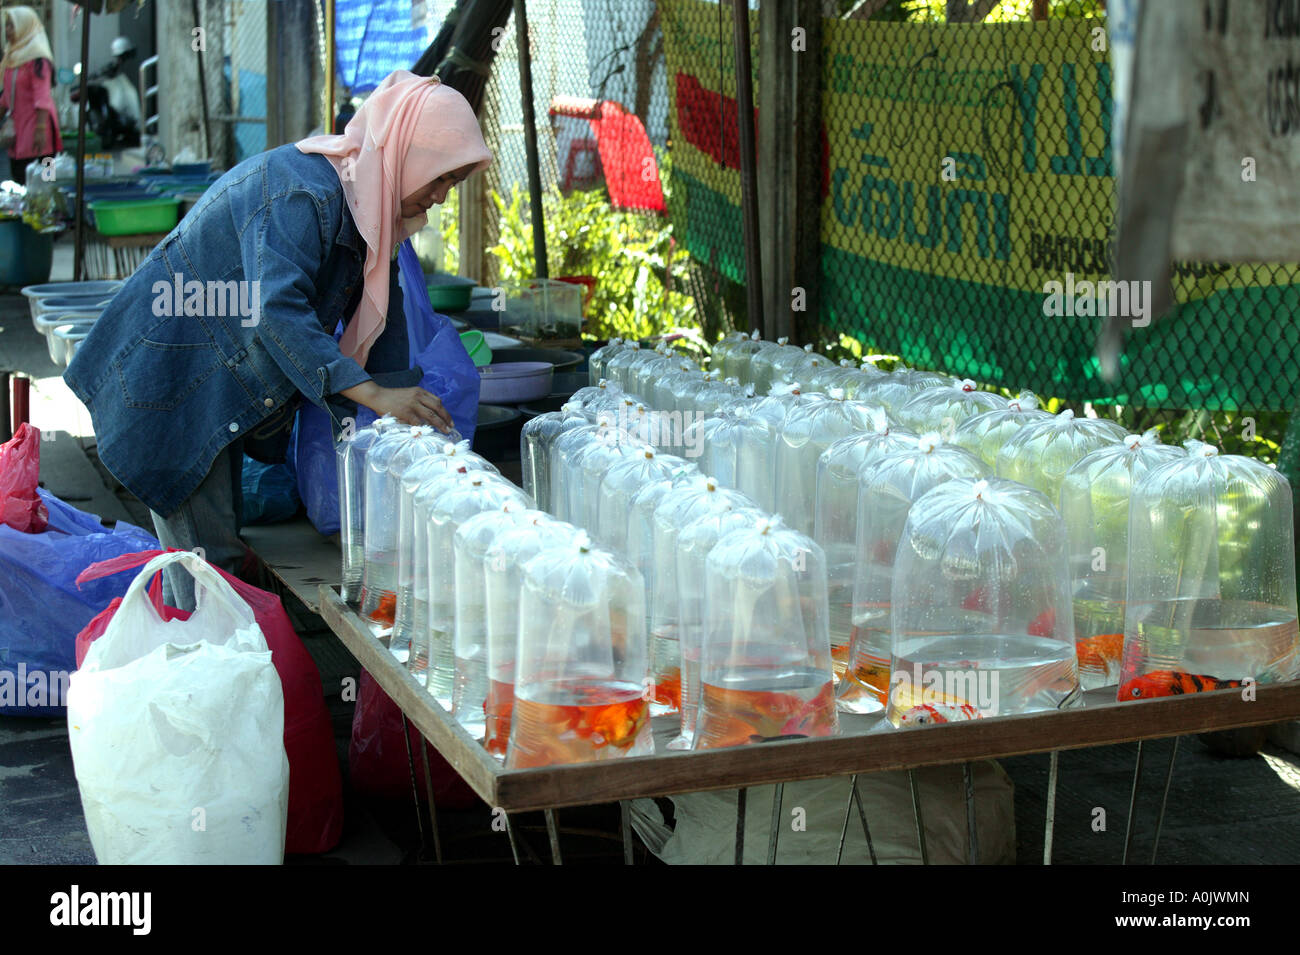 A stall selling goldfish in bags at a Muslim market in Hat Yai Stock